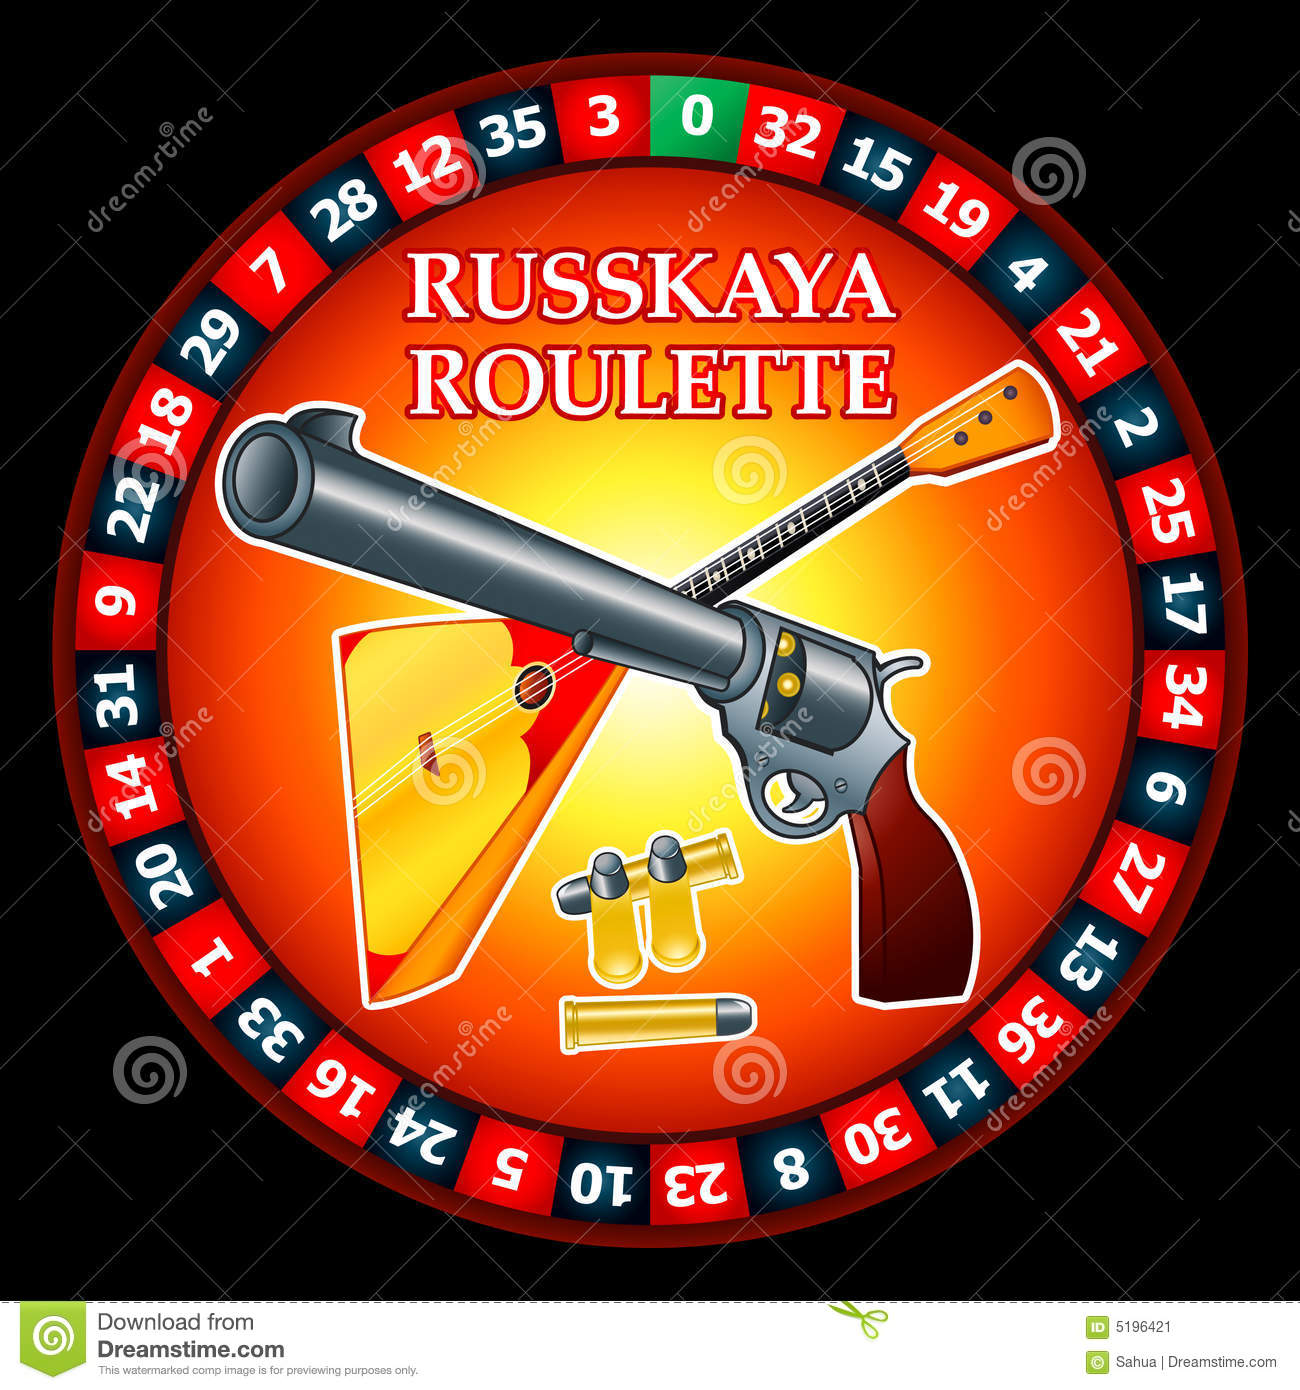 Maplestory russian roulette map id